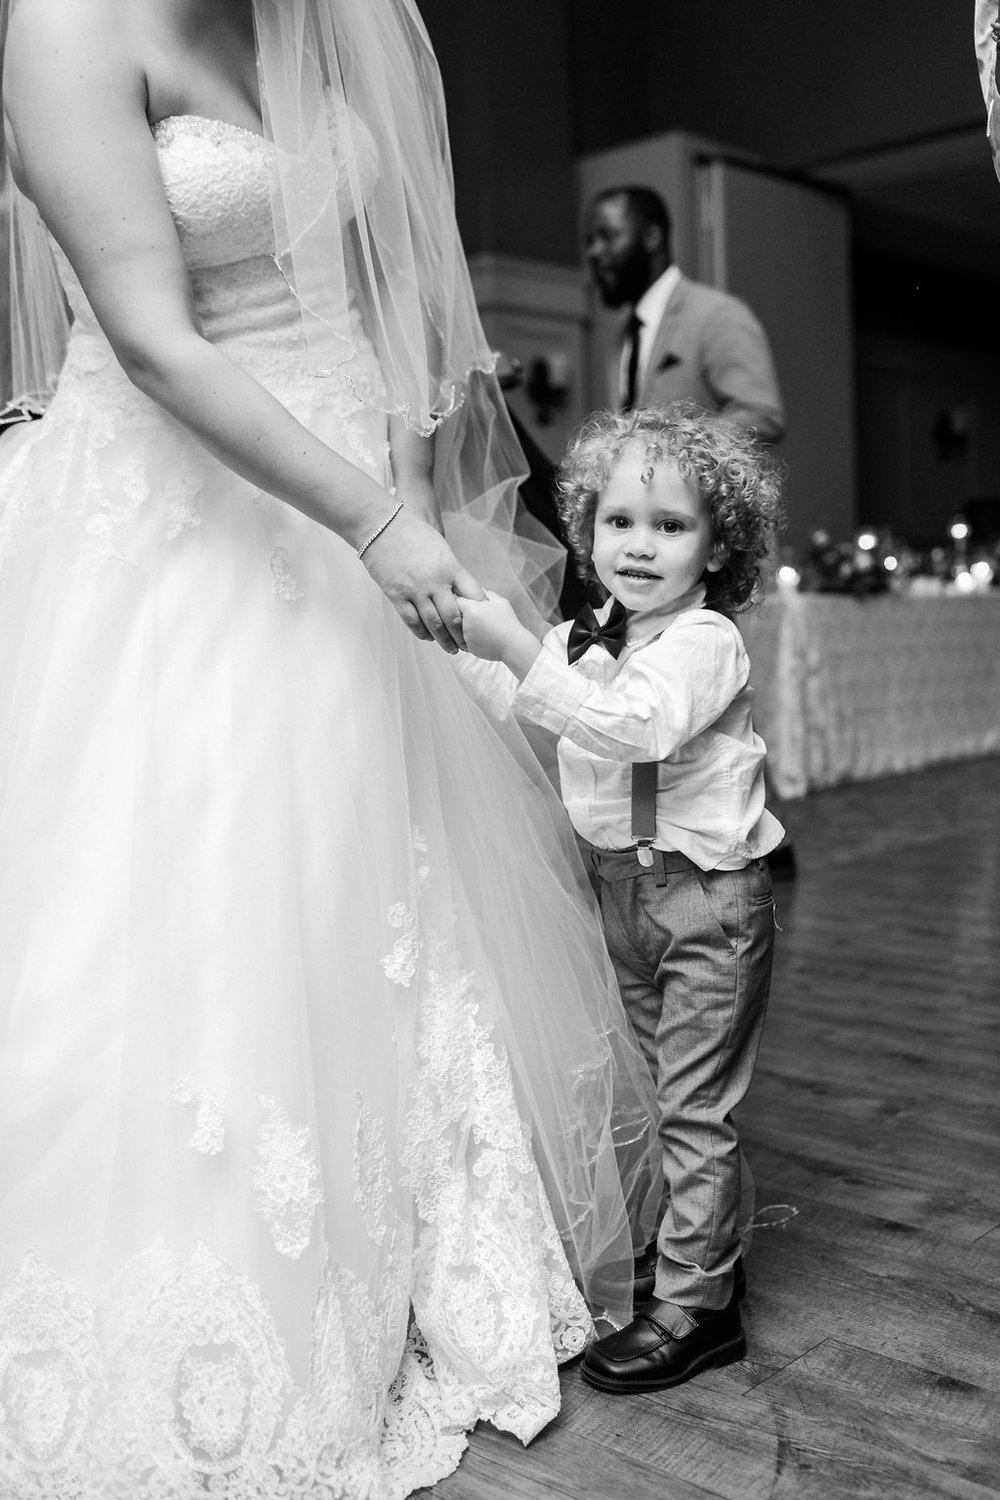 Mother-Son Wedding Photo // spunkysapphire.com/blog